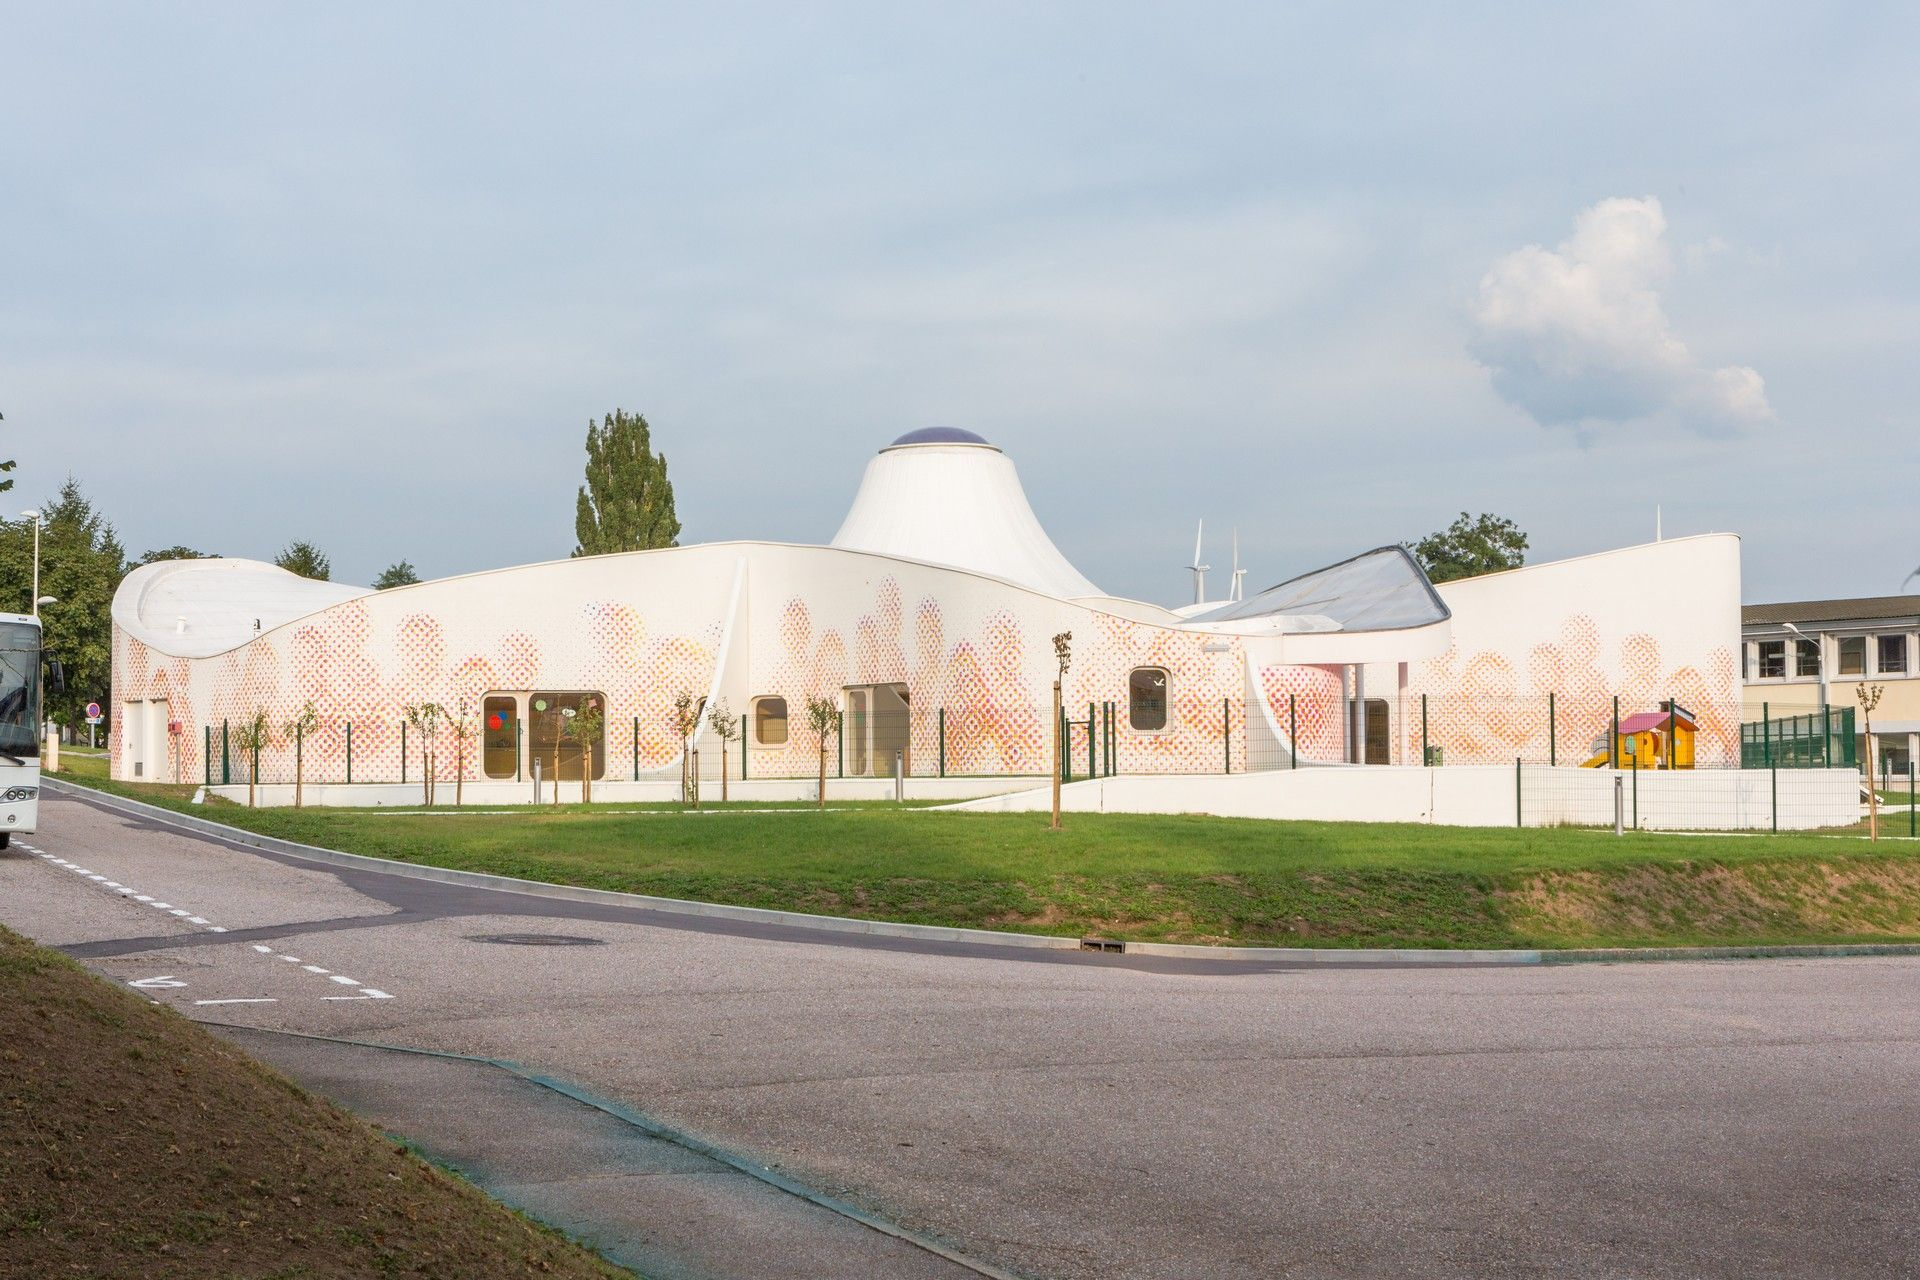 Childcare Facilities In Boulay And Piblange By Paul Le Quernec